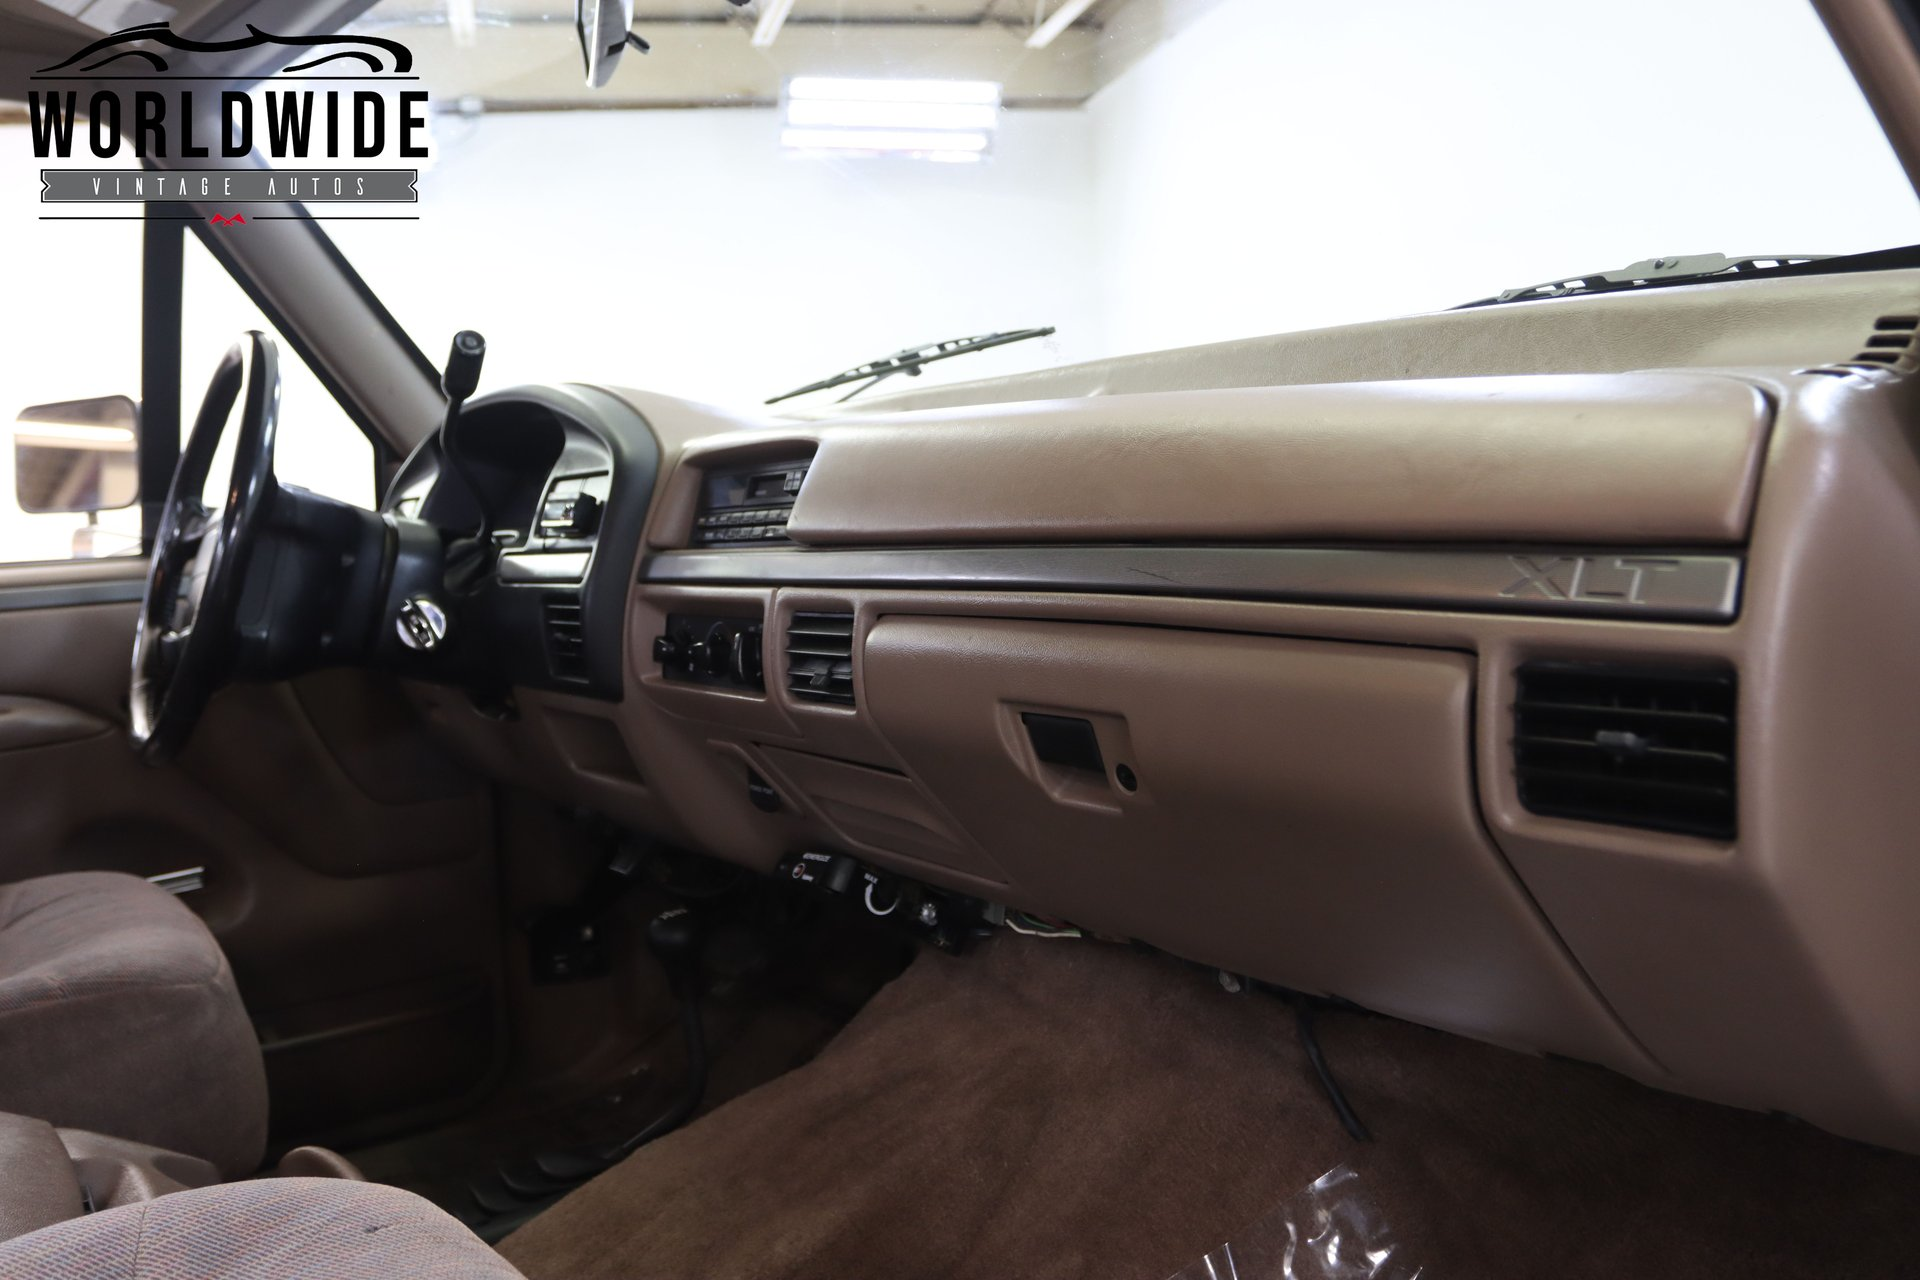 1994 Ford F-150 Supercab